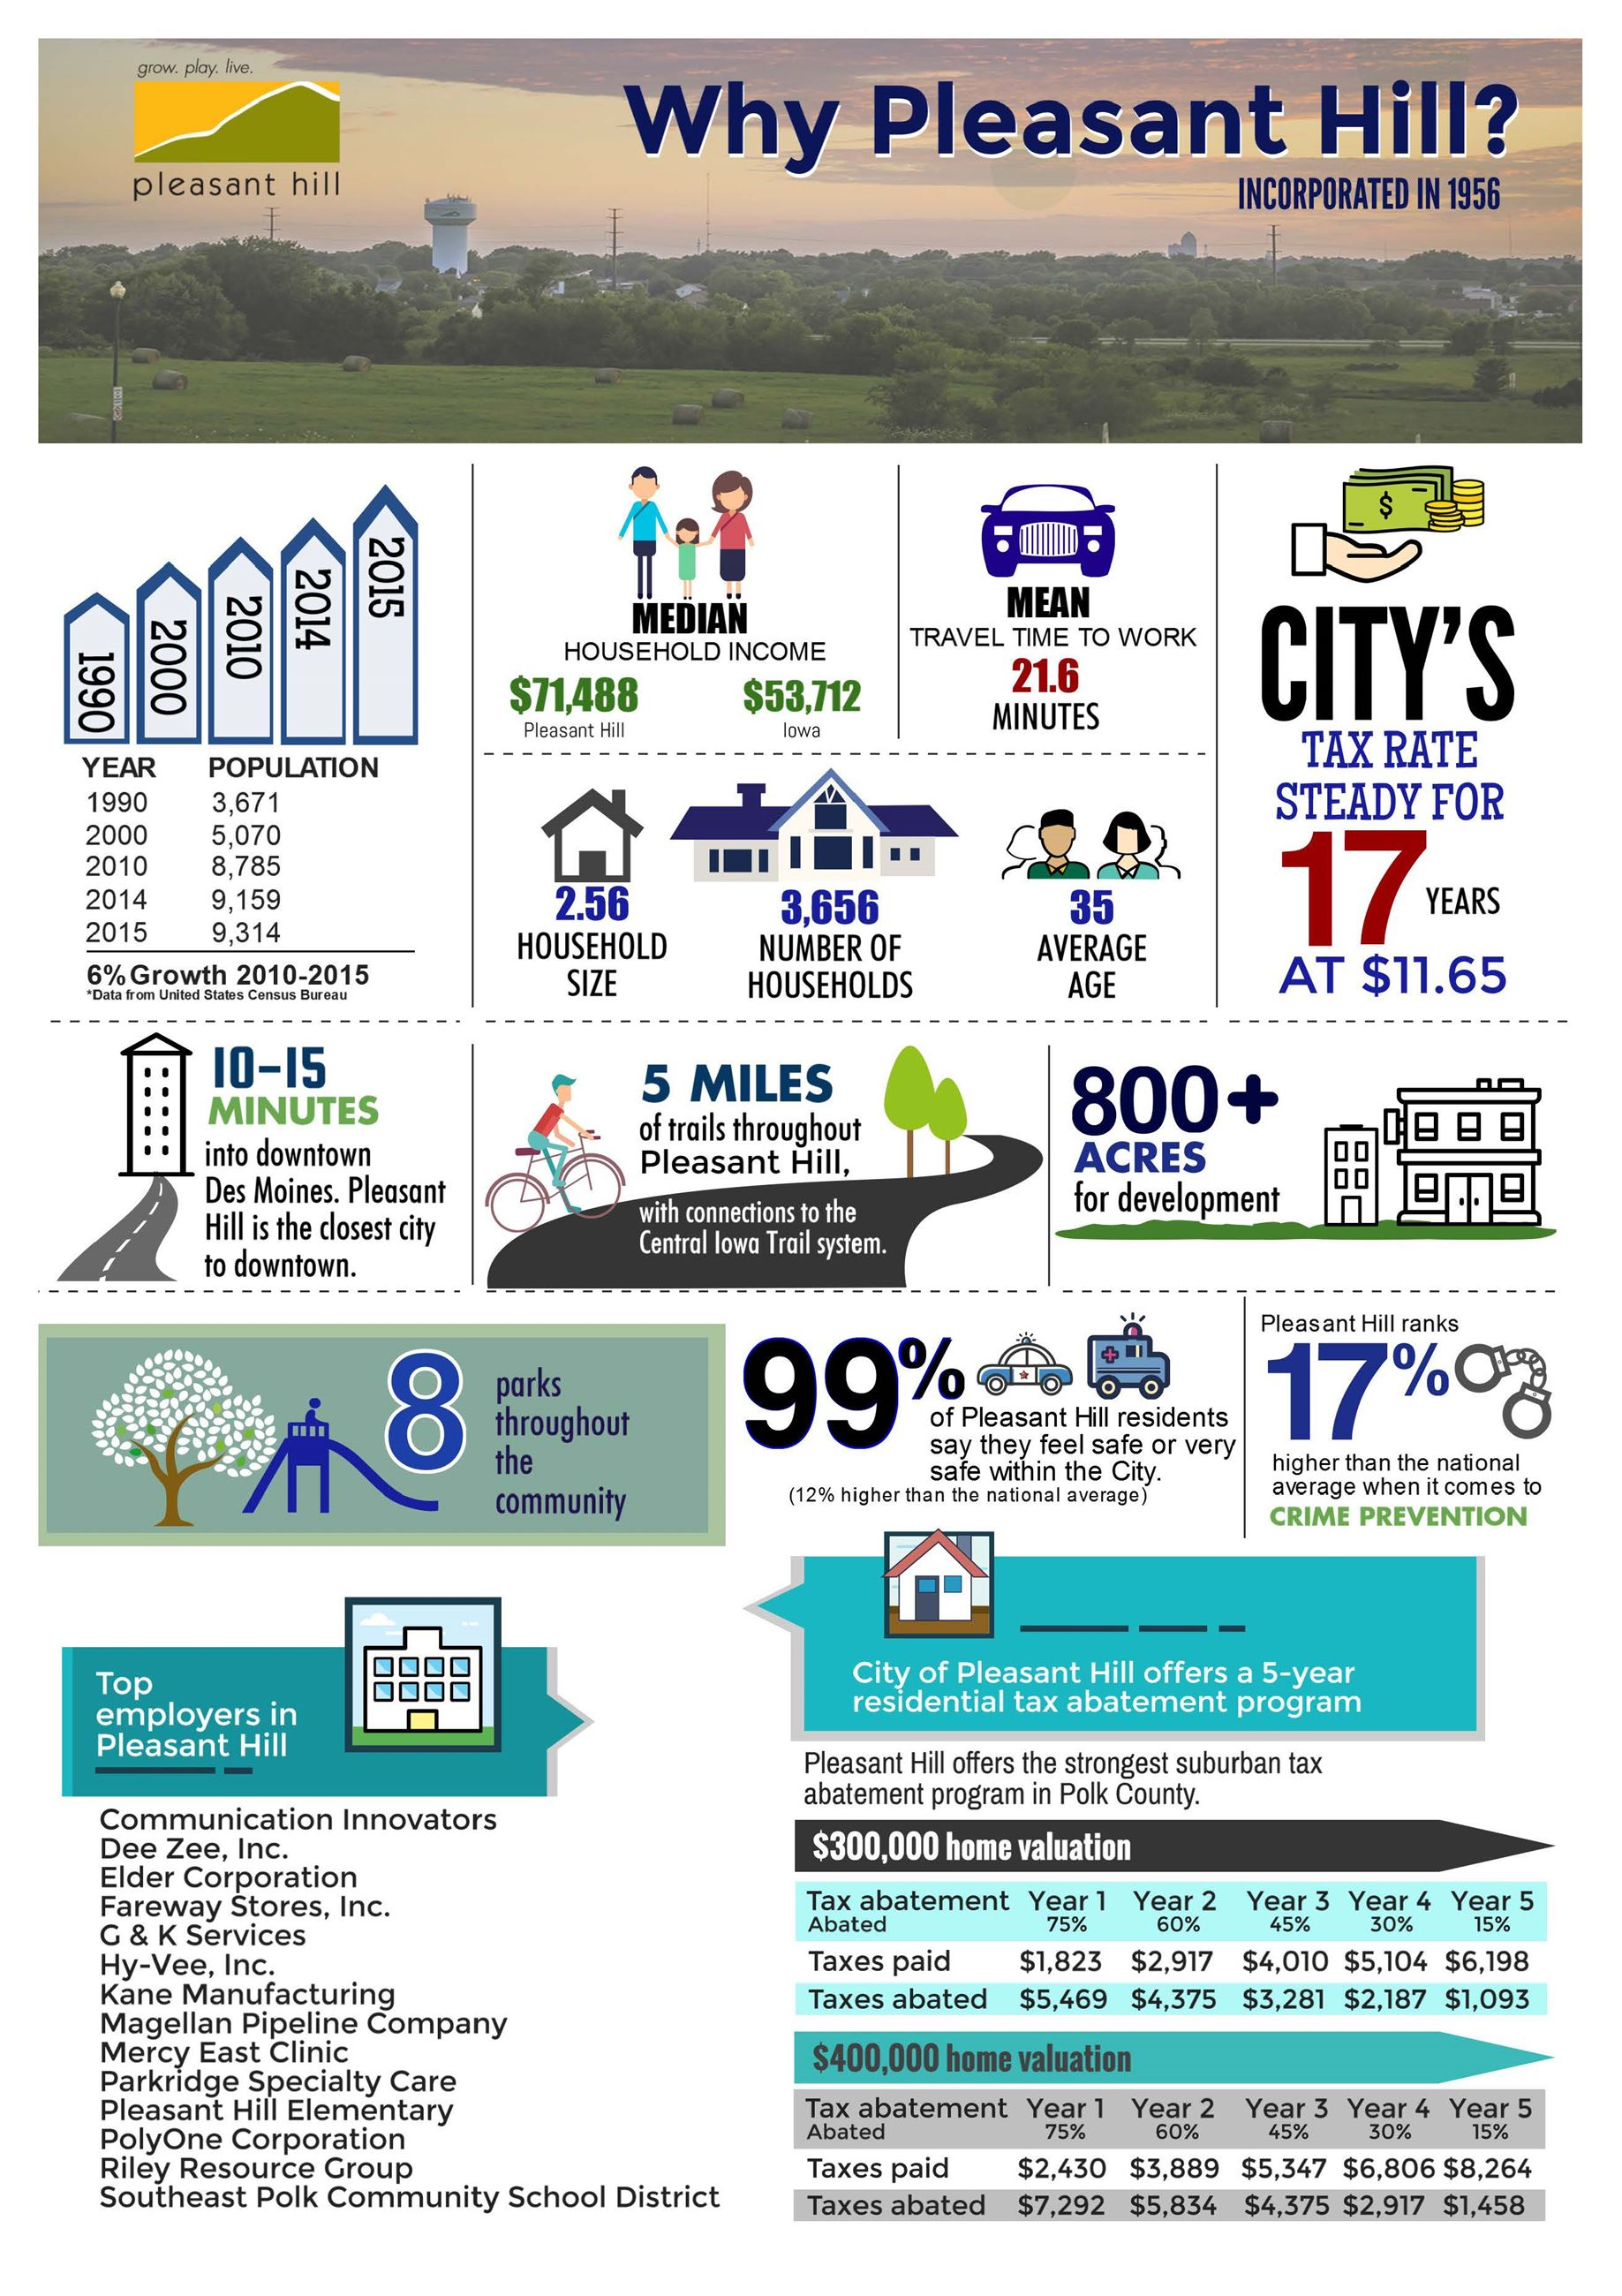 City of Pleasant Hill infographic